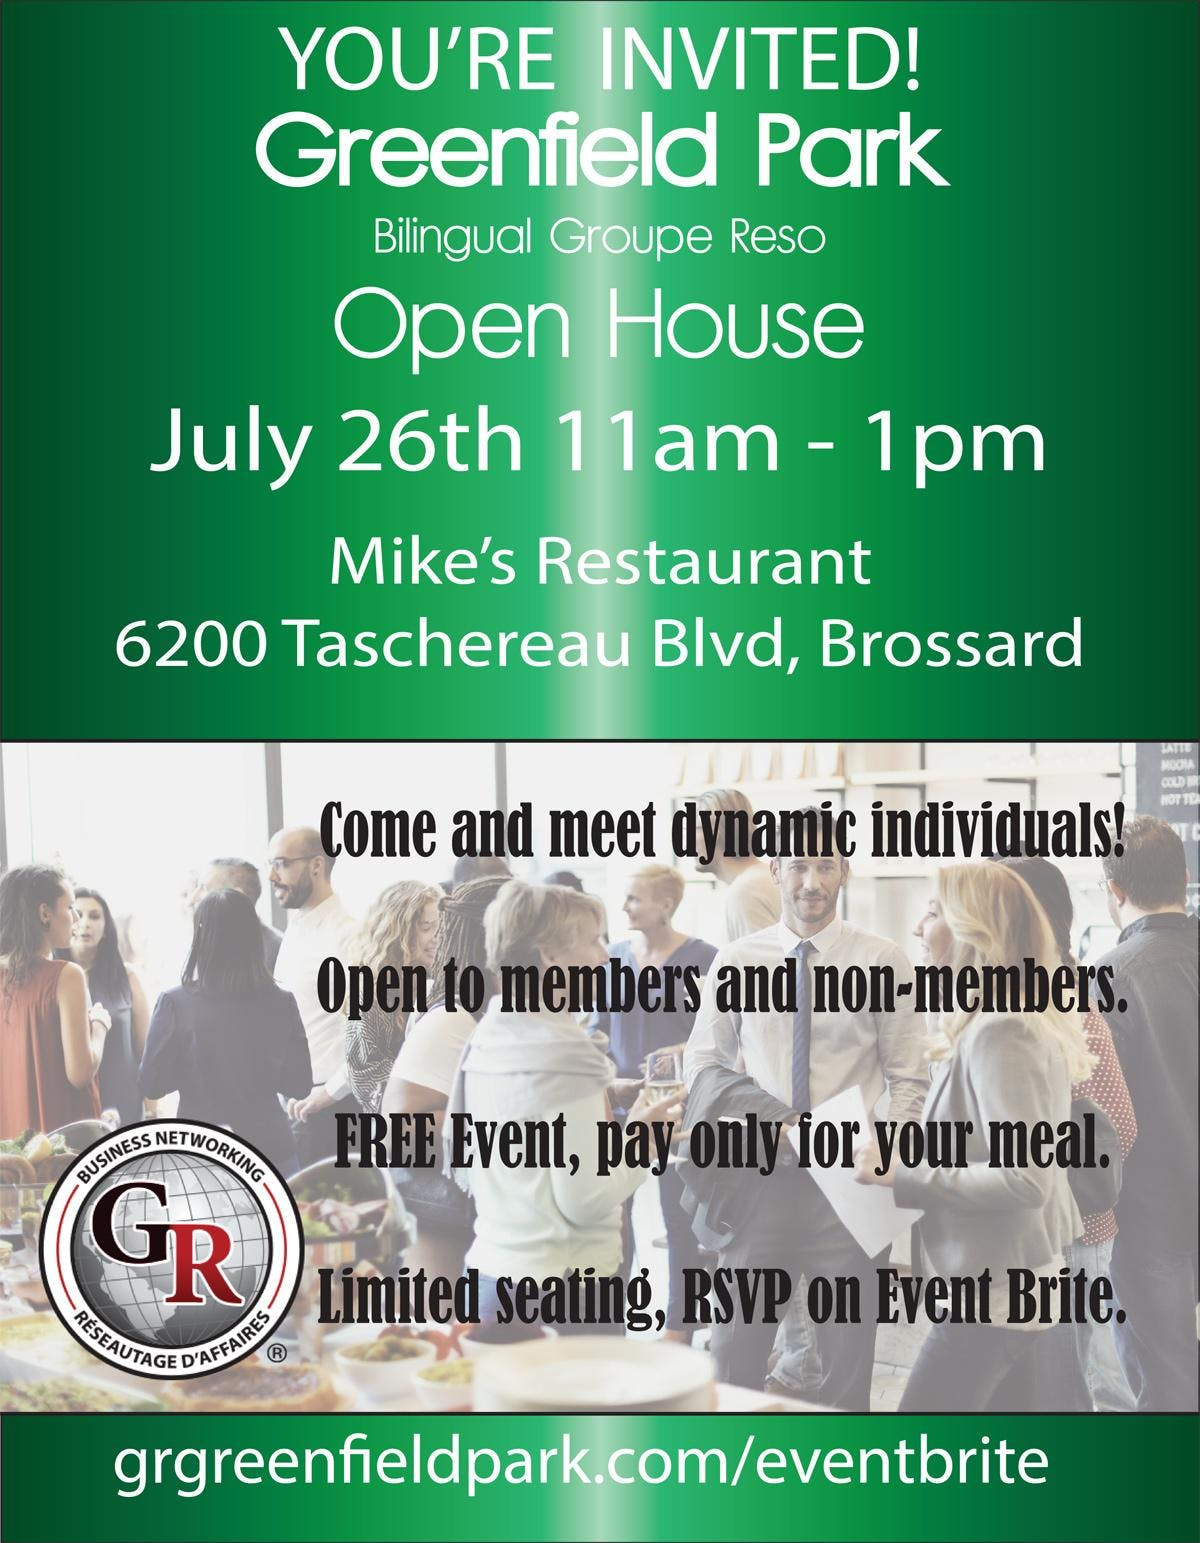 Greenfield Park Bilingual Groupe Rso Open House